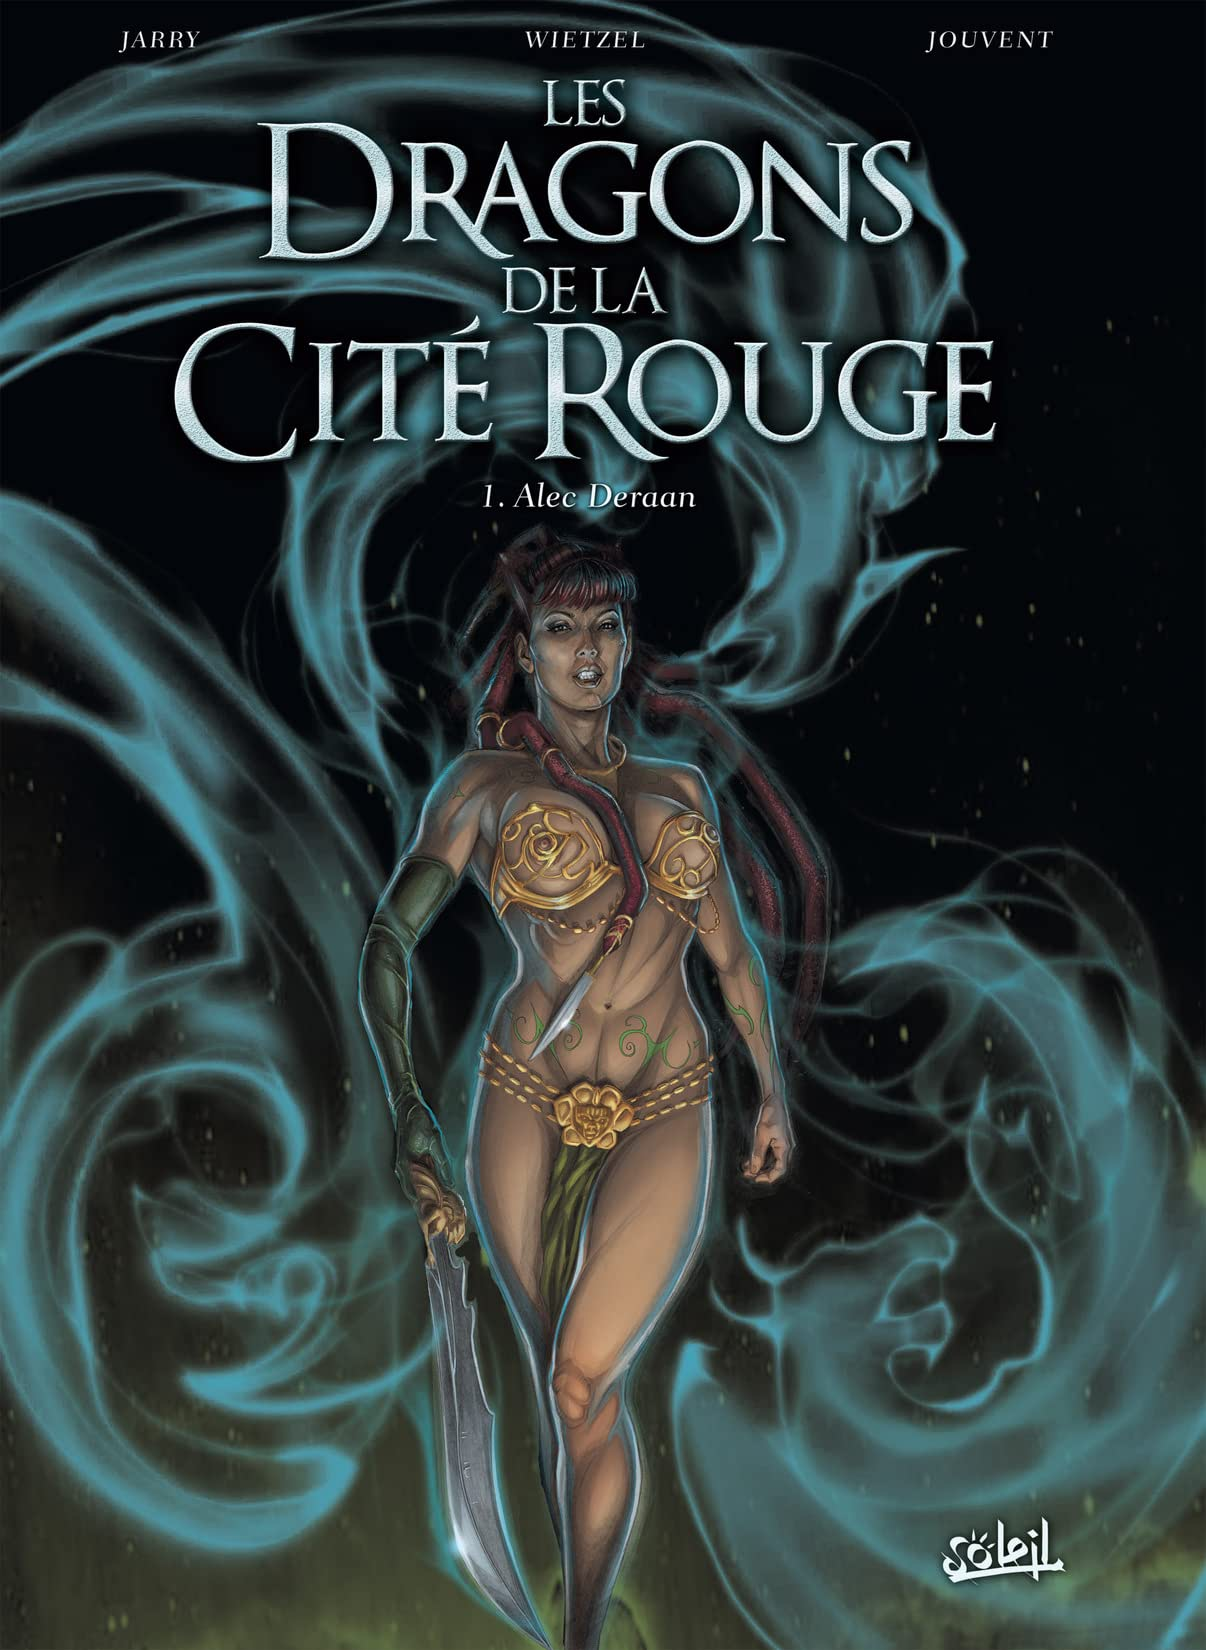 Dragons de la cité rouge Vol. 1: Alec Deraan